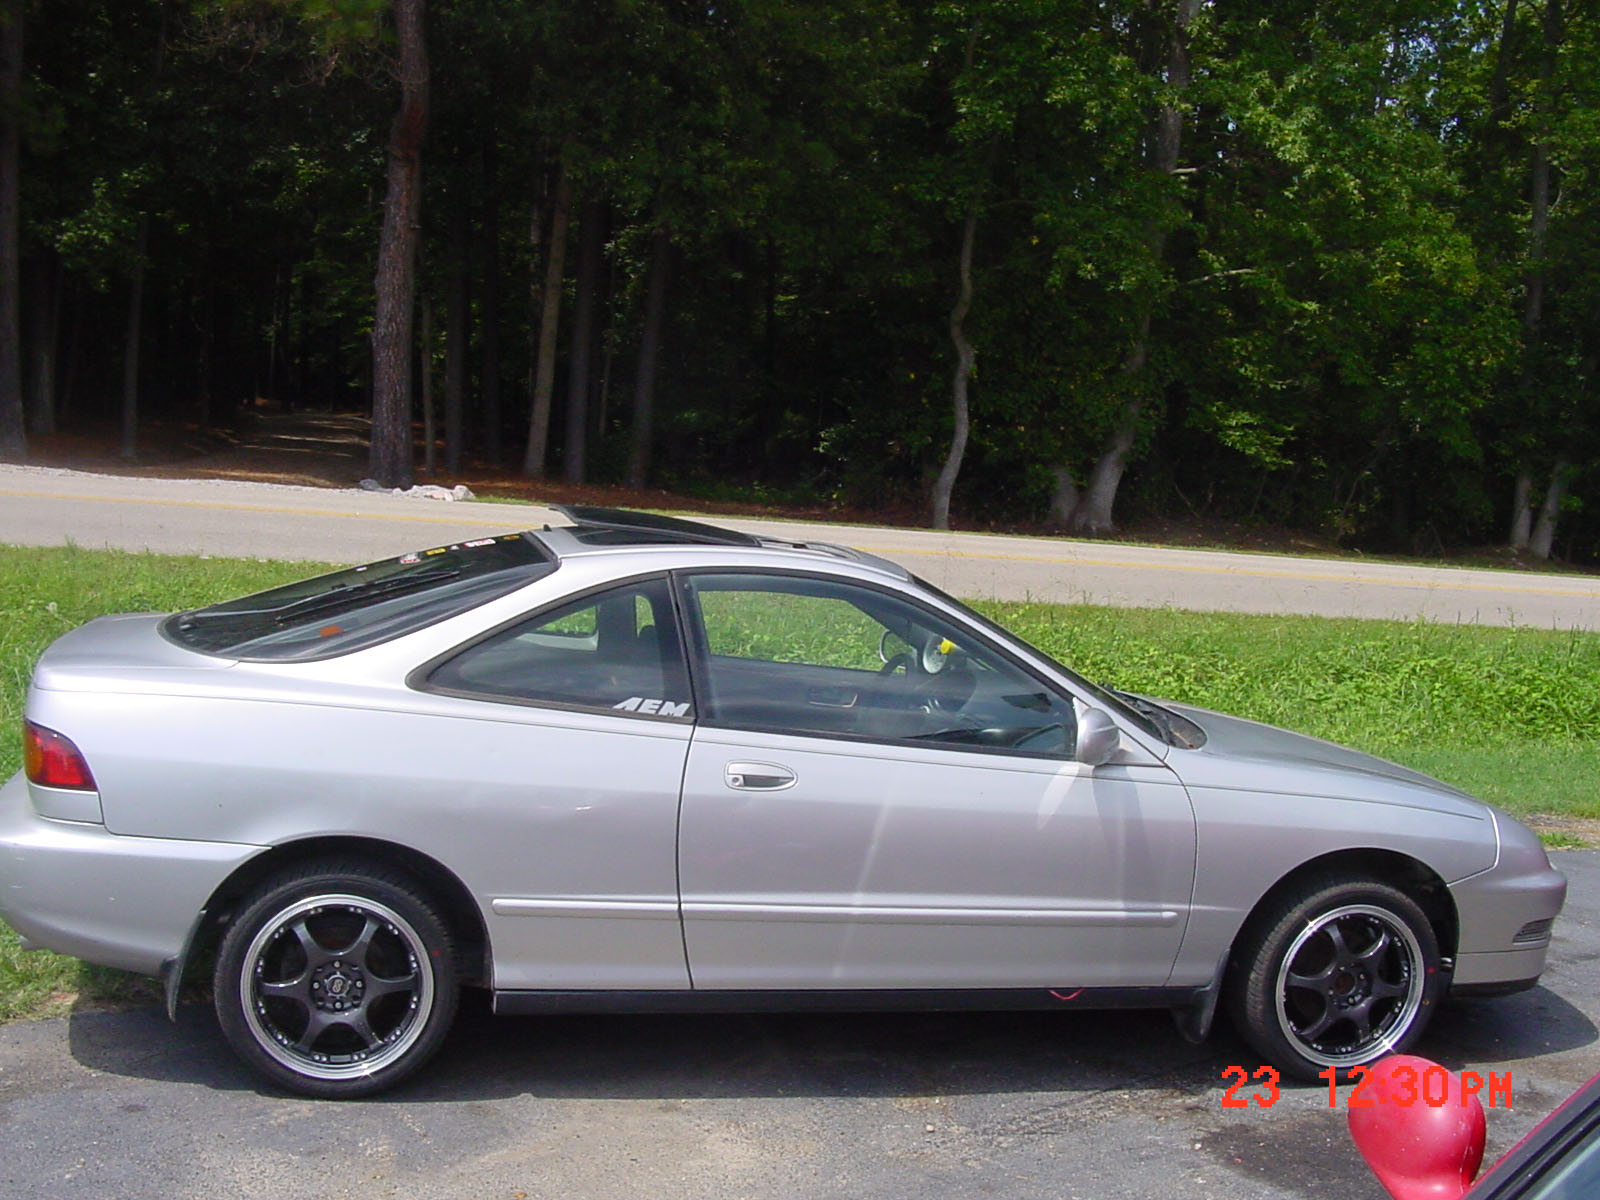 acura integra 4 door silver. 1996 acura racegas 110 octane integra special edition for sale disputanta virginia 4 door silver